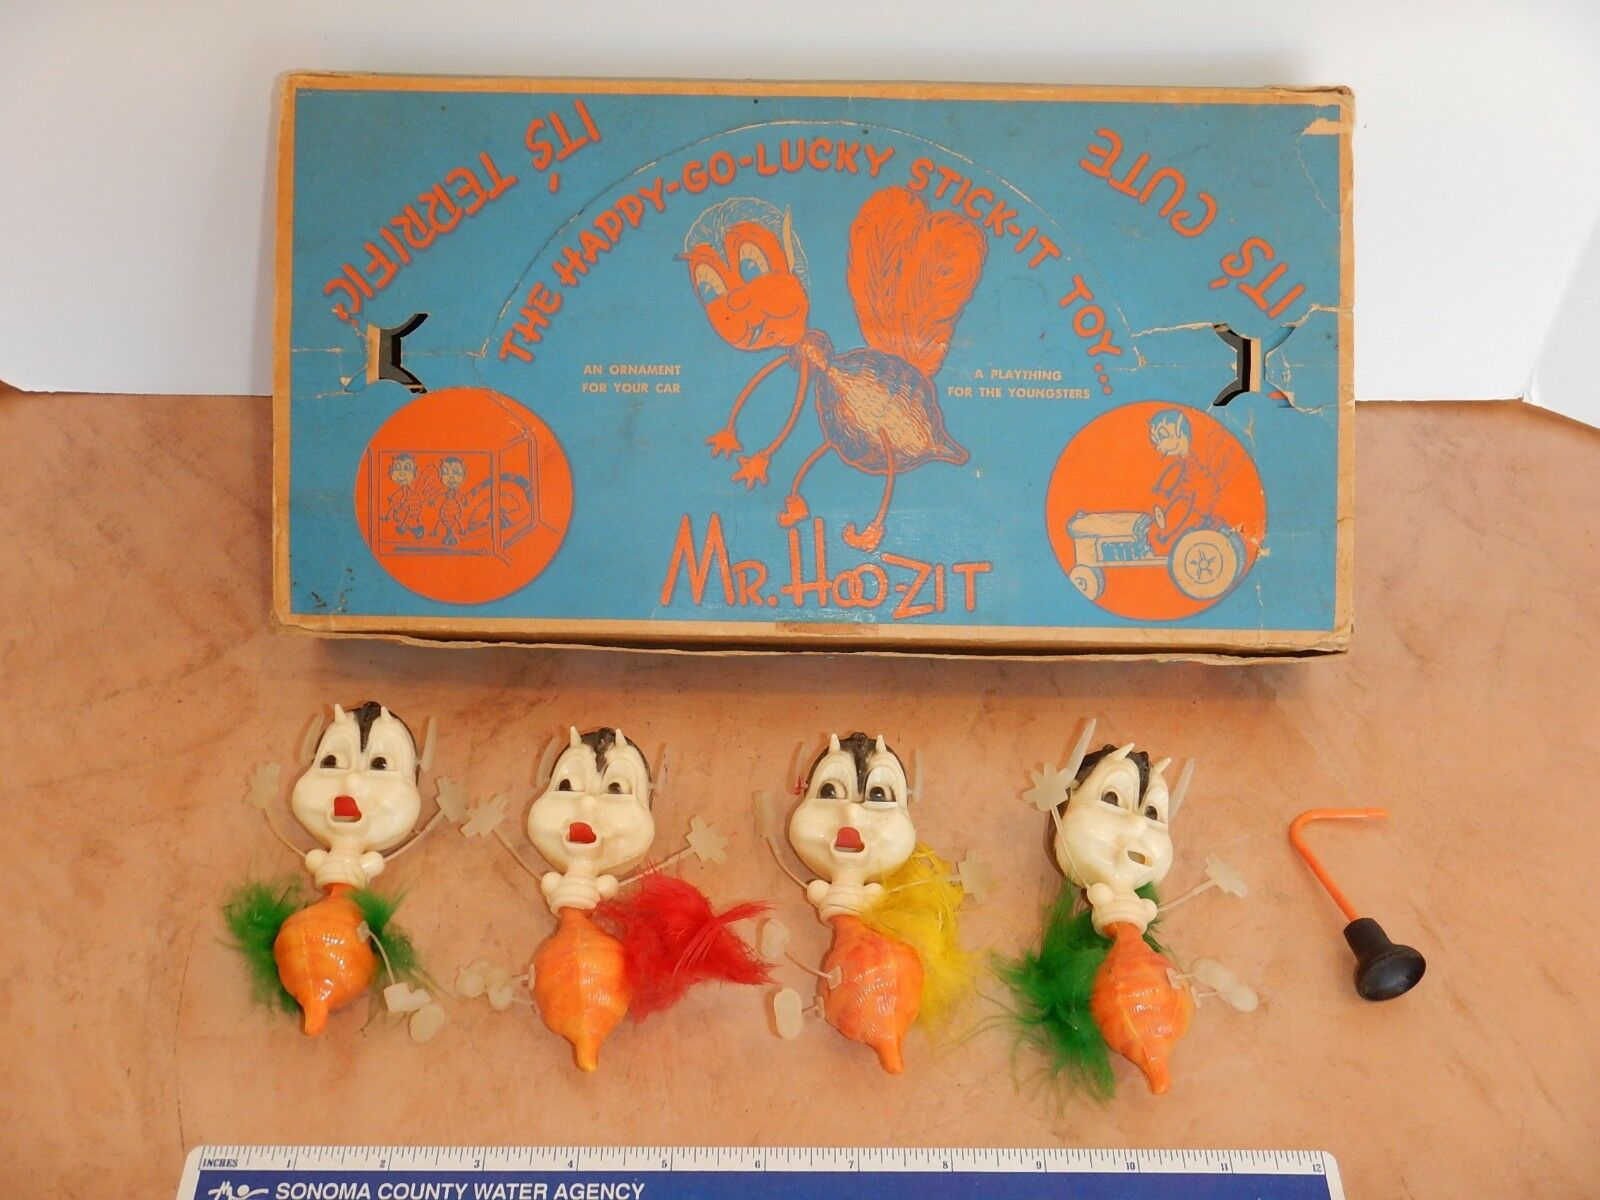 ANTIQUE 1940s  MR. HOO-ZIT PLASTIC NOVELTY TOY & STORE DISPLAY BOX - 4 PIECES